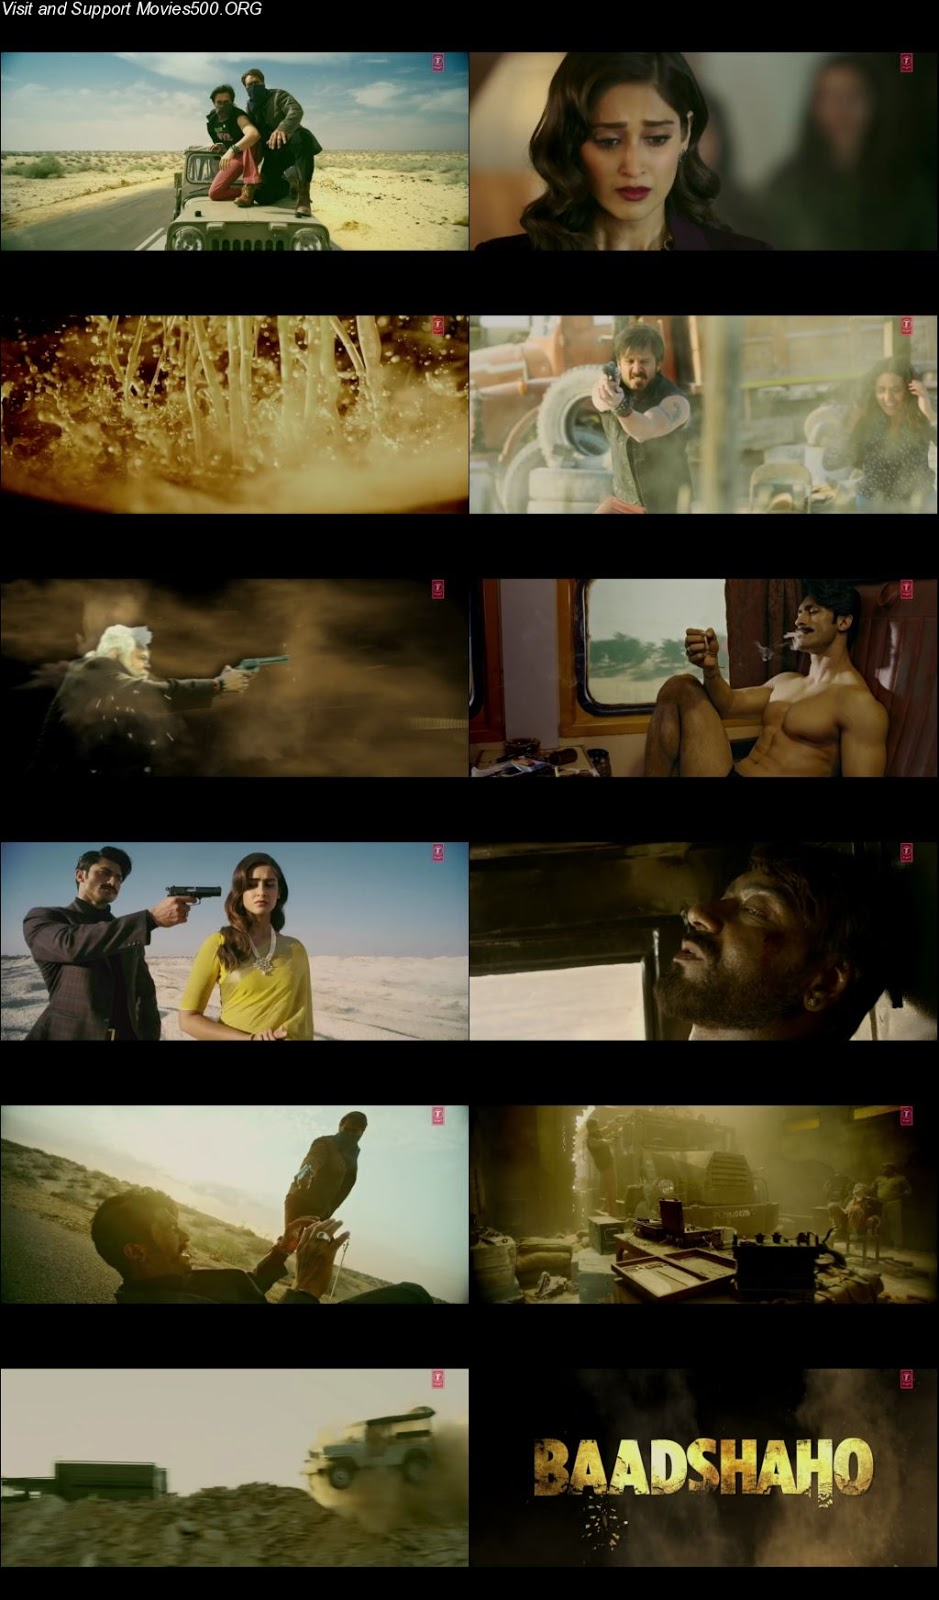 Baadshaho 2017 Hindi Movie Official Trailer Download HD 720P at massage.company